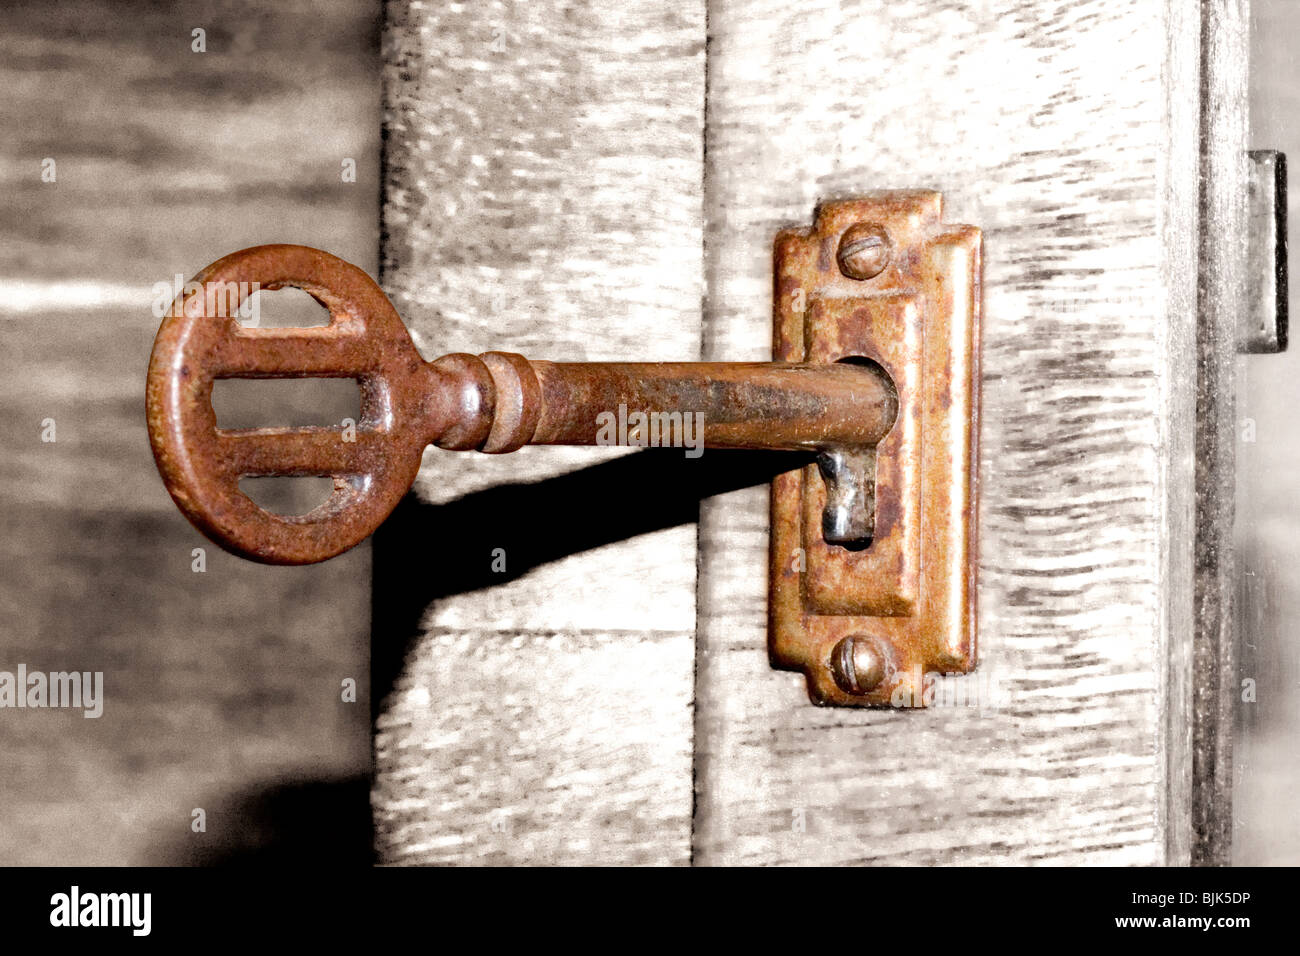 Antique Cabinet Lock and Key - Antique Cabinet Lock And Key Stock Photo: 28695570 - Alamy